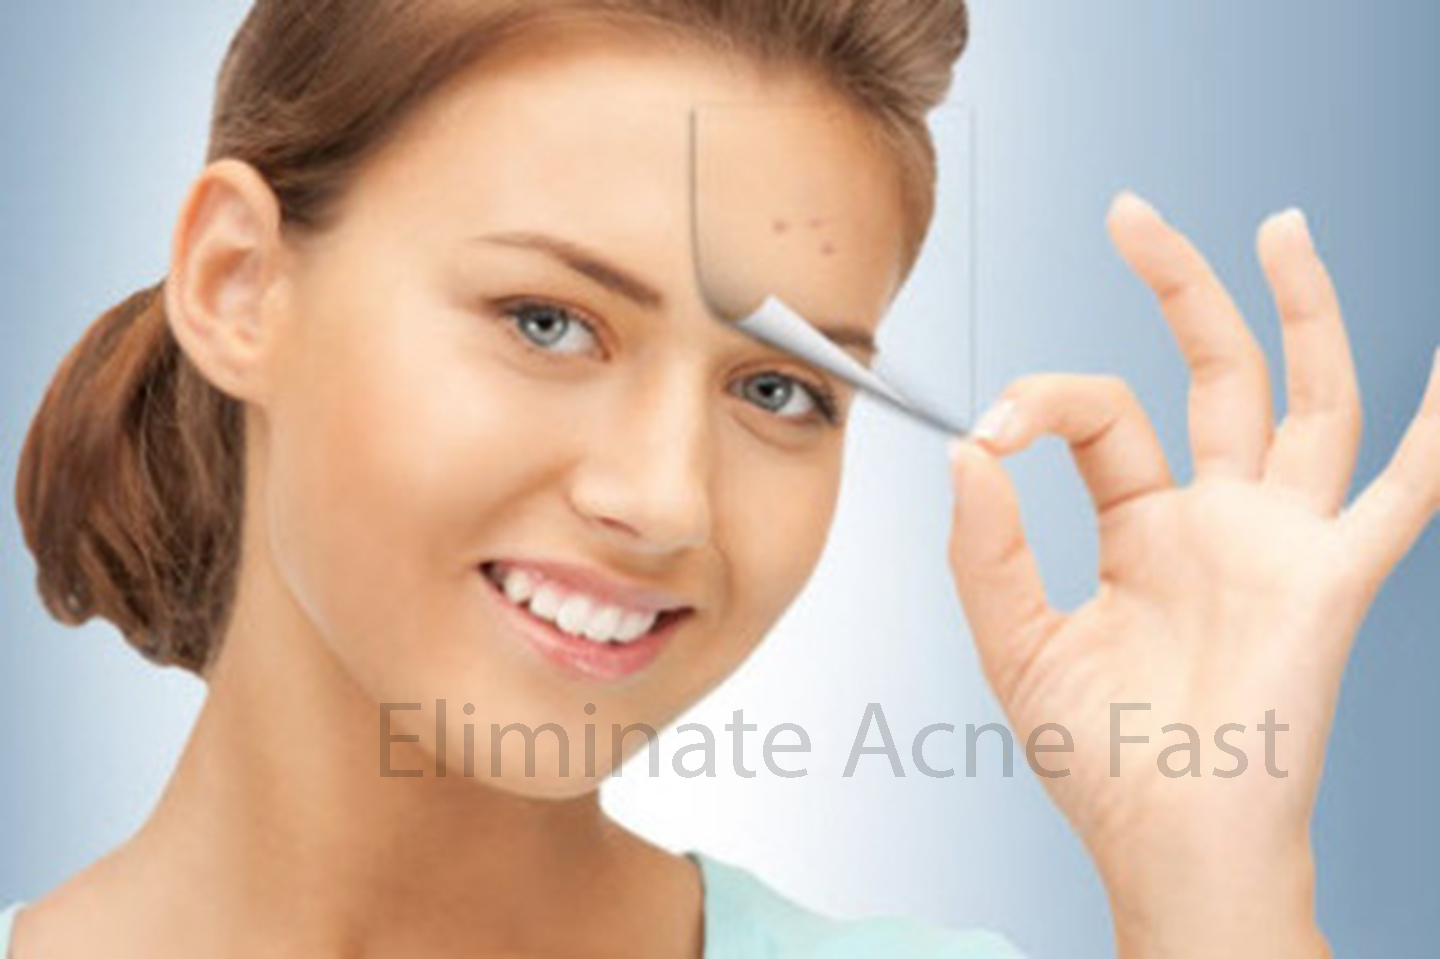 Eliminate Acne Fast